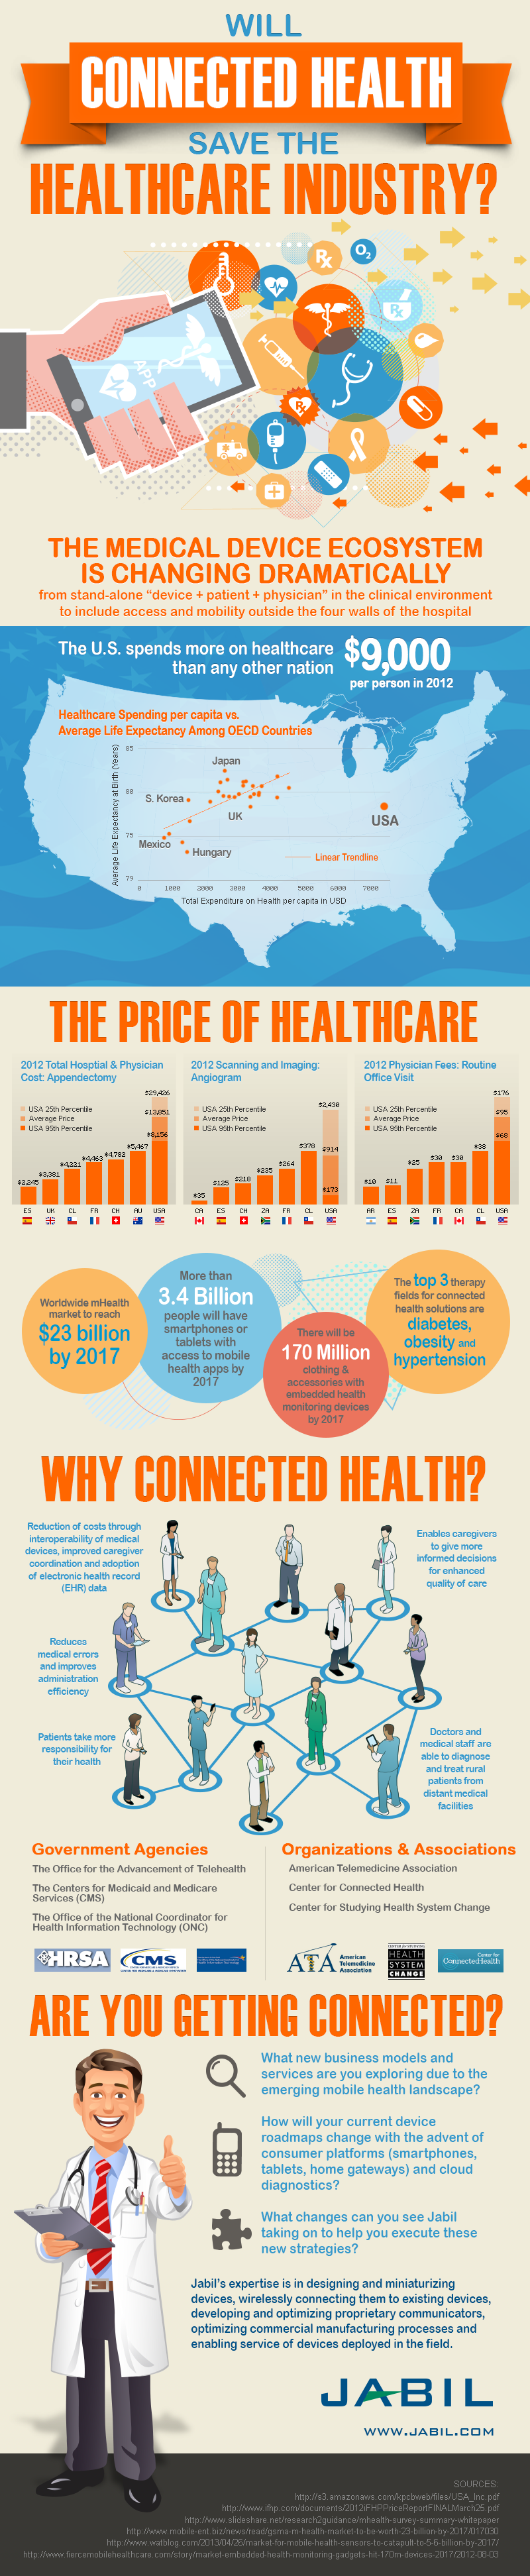 Healthcare Industry Statistics and Standards